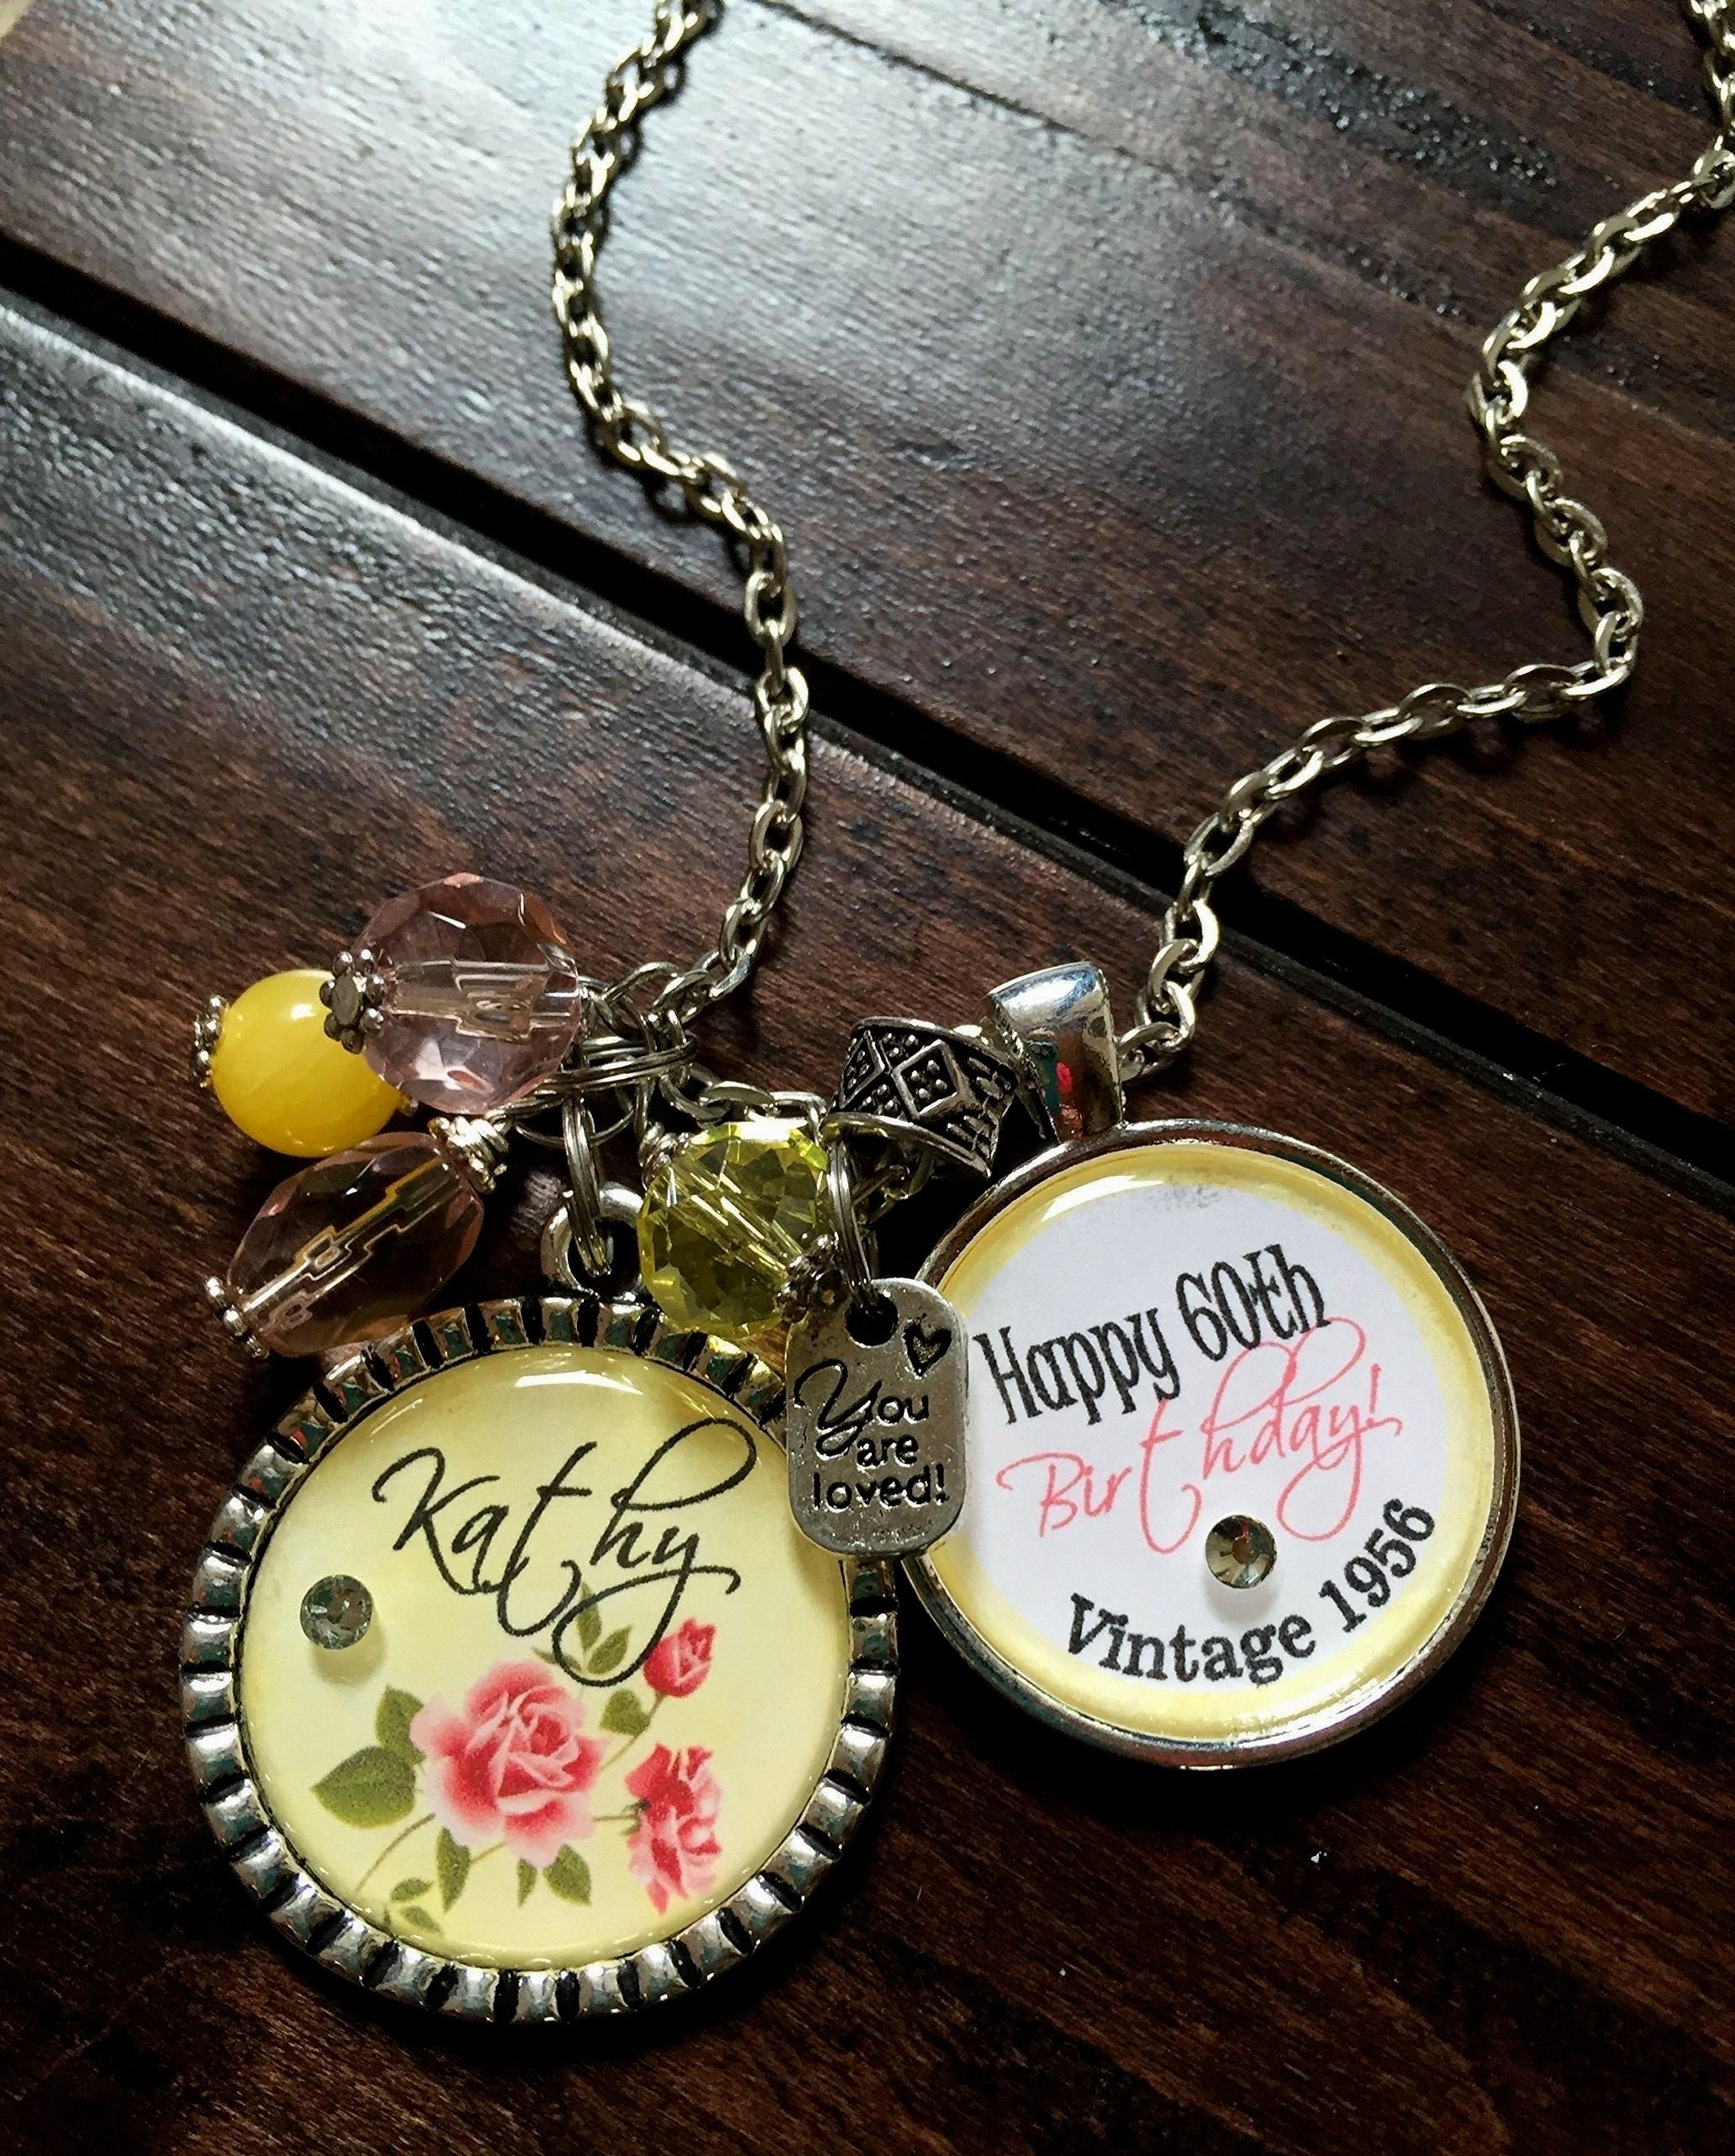 10 Attractive 40Th Birthday Gift Ideas For Sister 20 Inspirational Concept More Than 40th